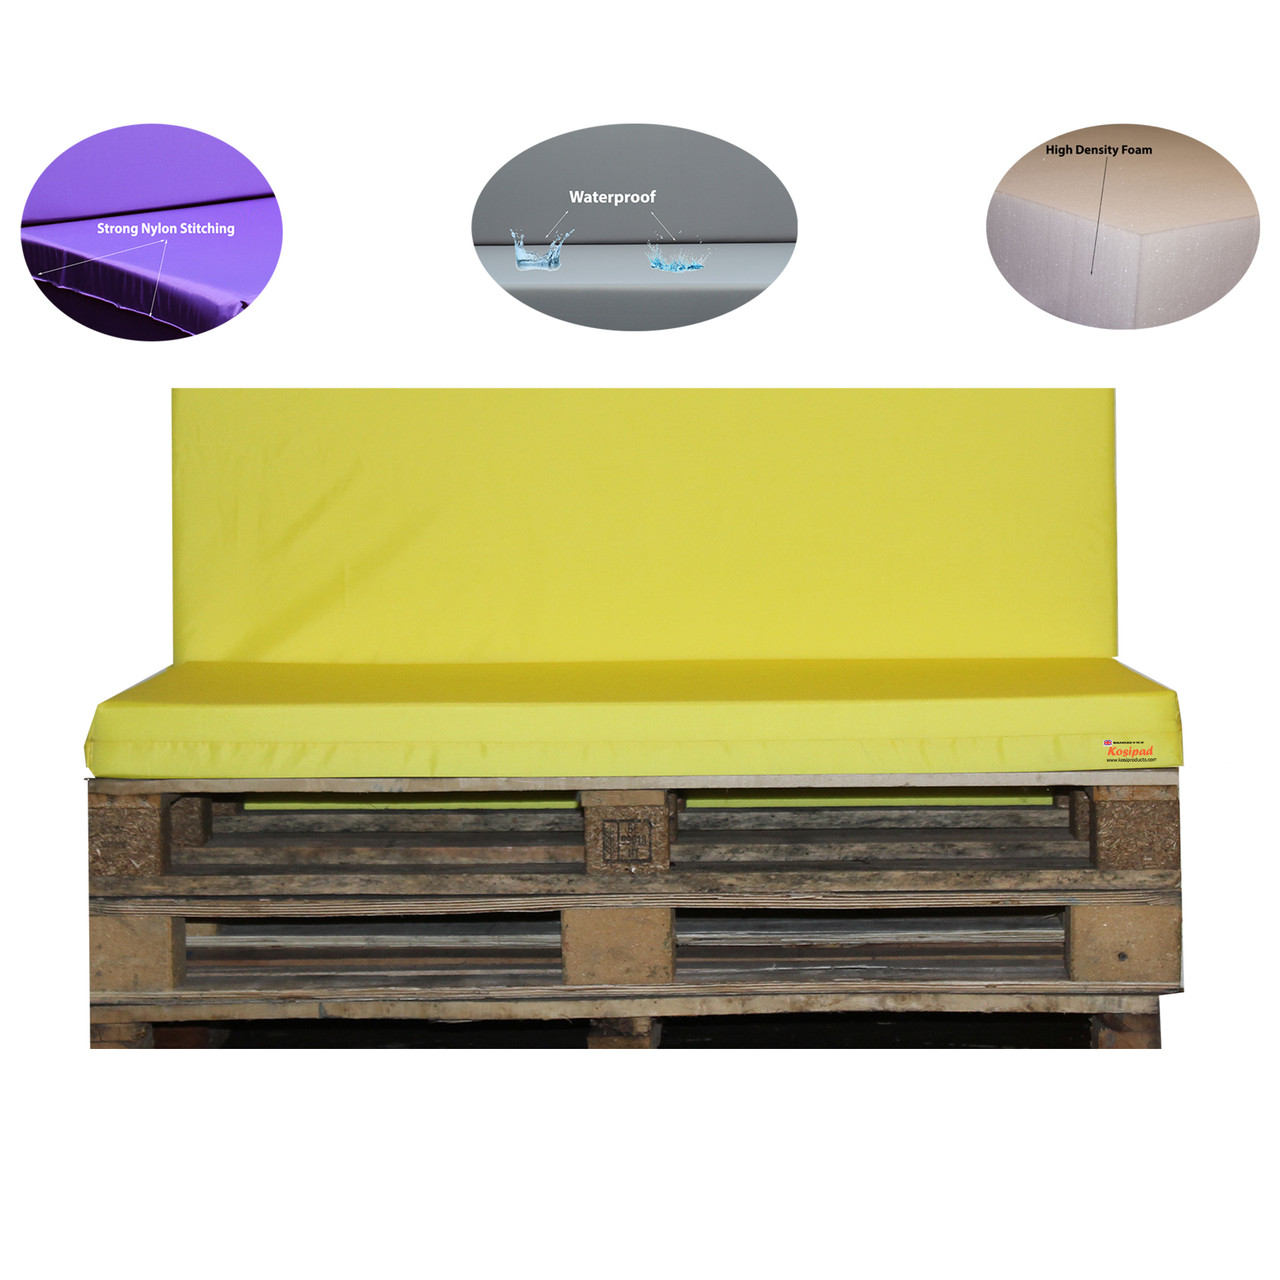 Kosipad Yellow cushions for pallet furniture for Euro Pallets